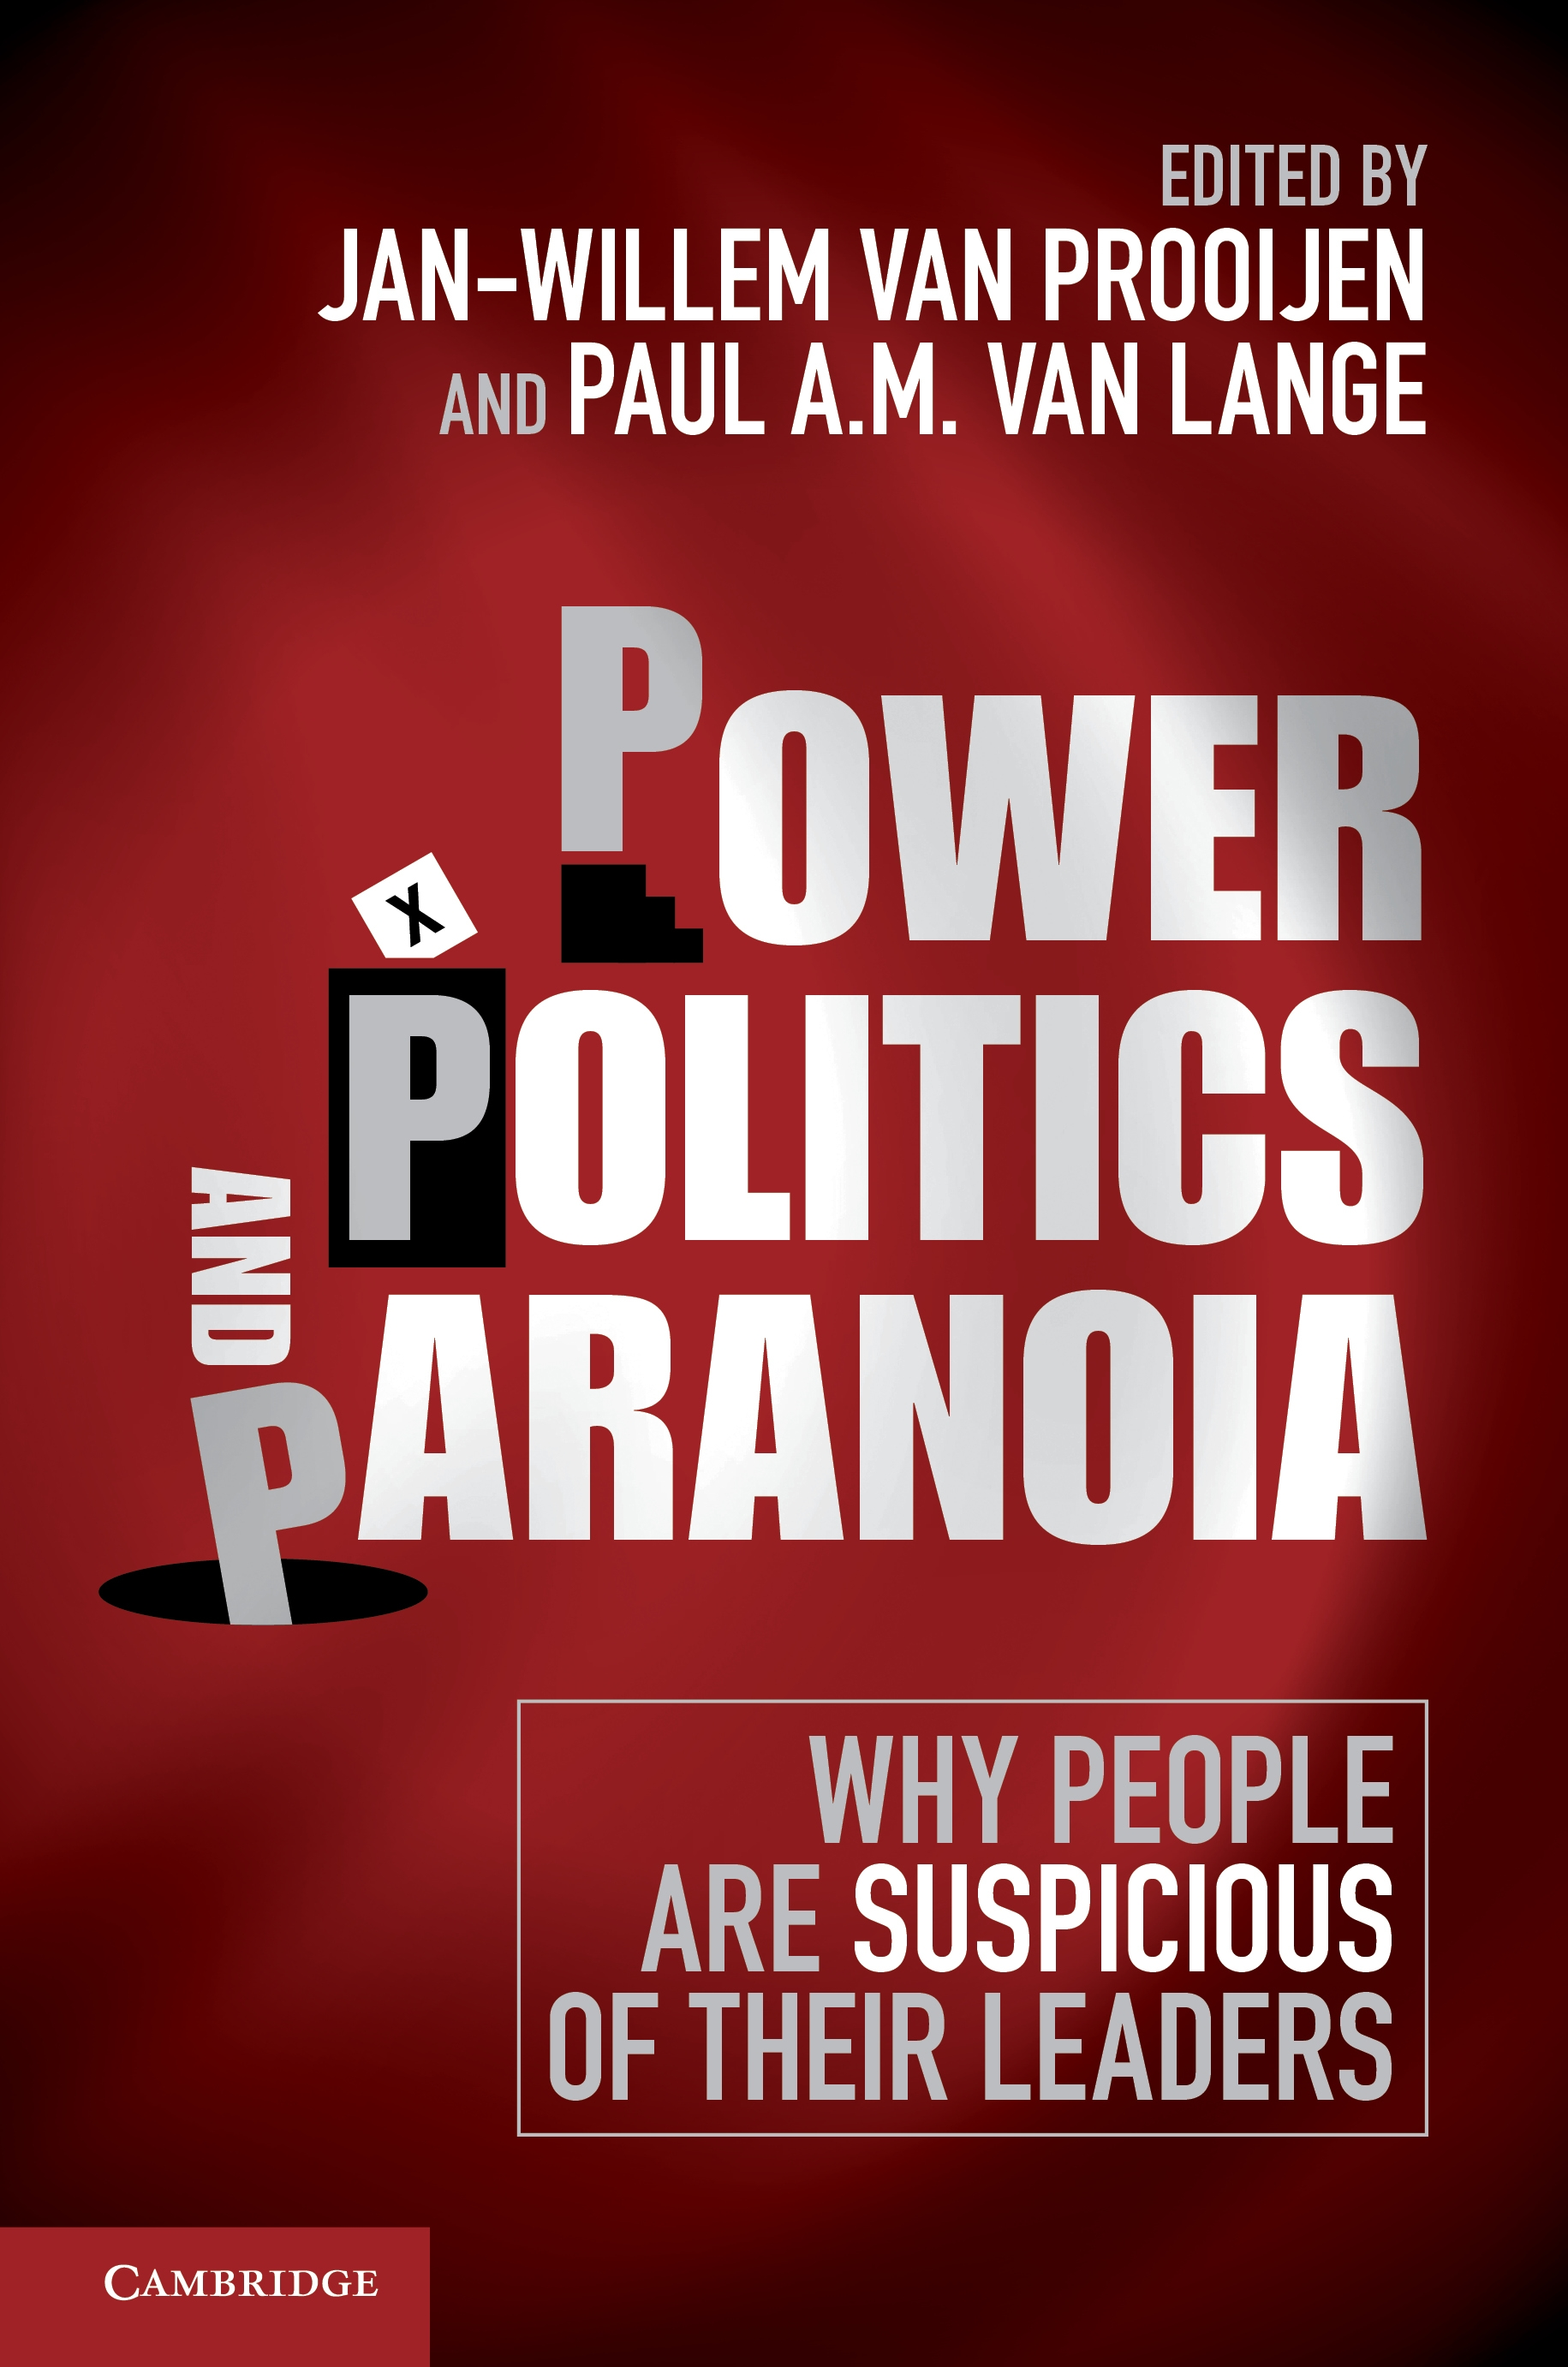 Van Prooijen, J. W., & Van Lange, P. A. M. (2014, Eds).   Power, politics, and paranoia: Why people are suspicious of their leaders.     Cambridge University Press.